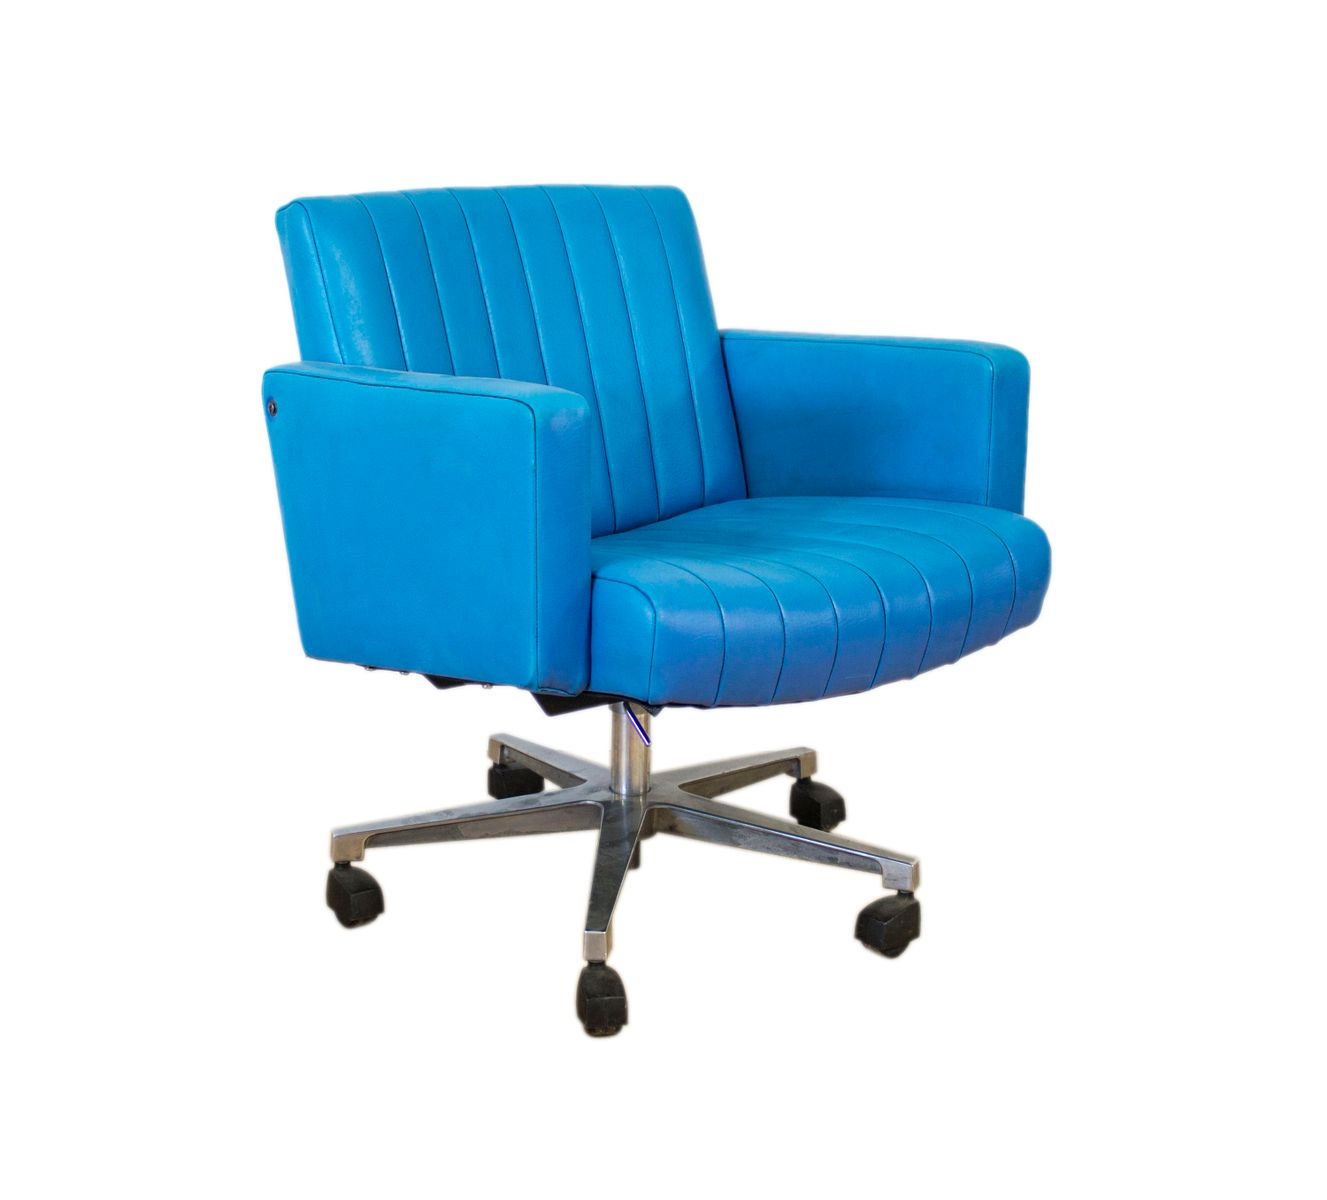 Teal office chair - Price Per Piece